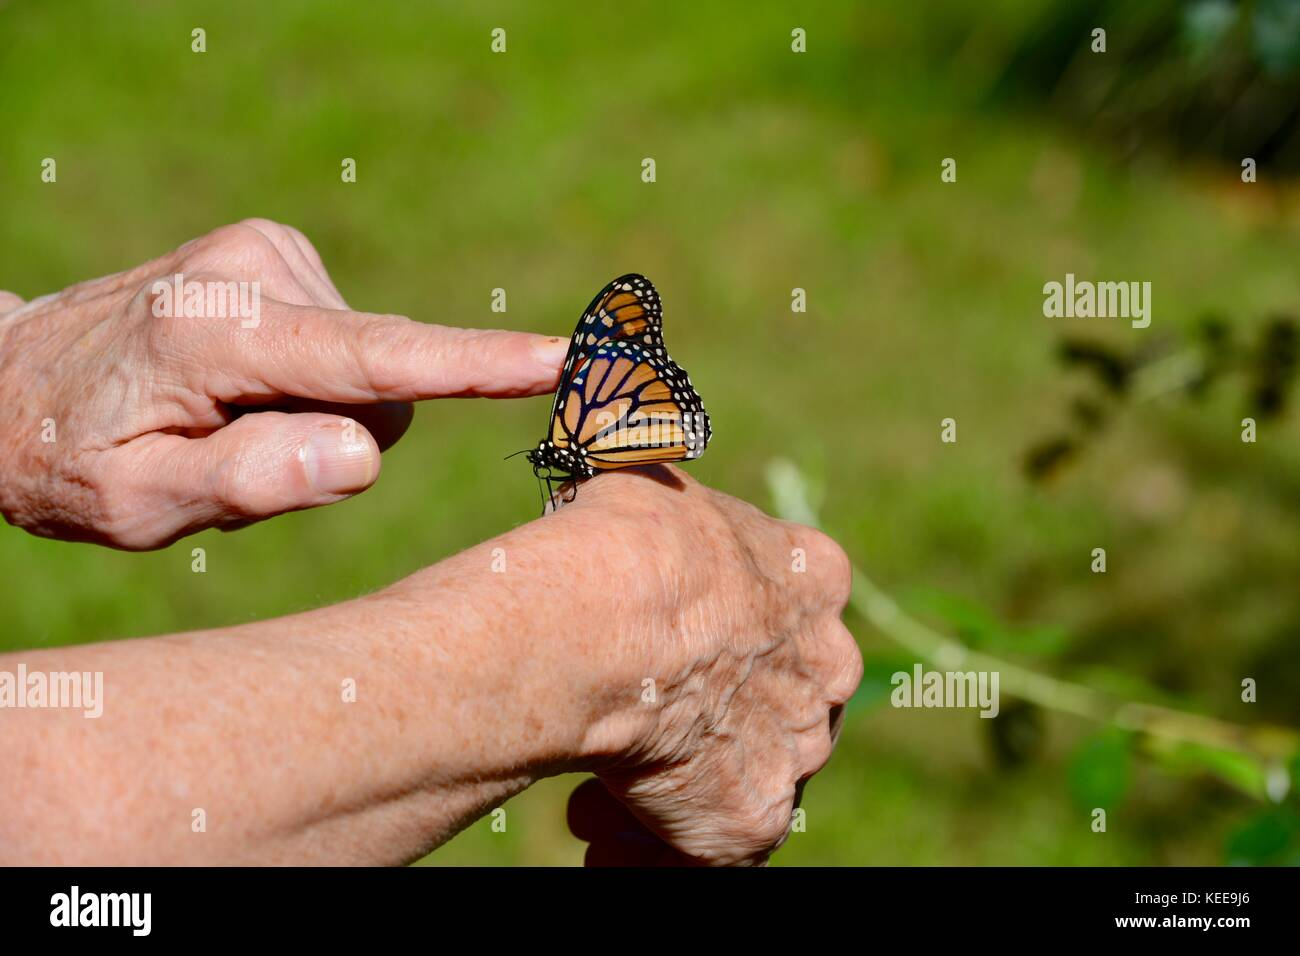 f41718a13 Monarch butterfly on a finger Stock Photo: 163813390 - Alamy